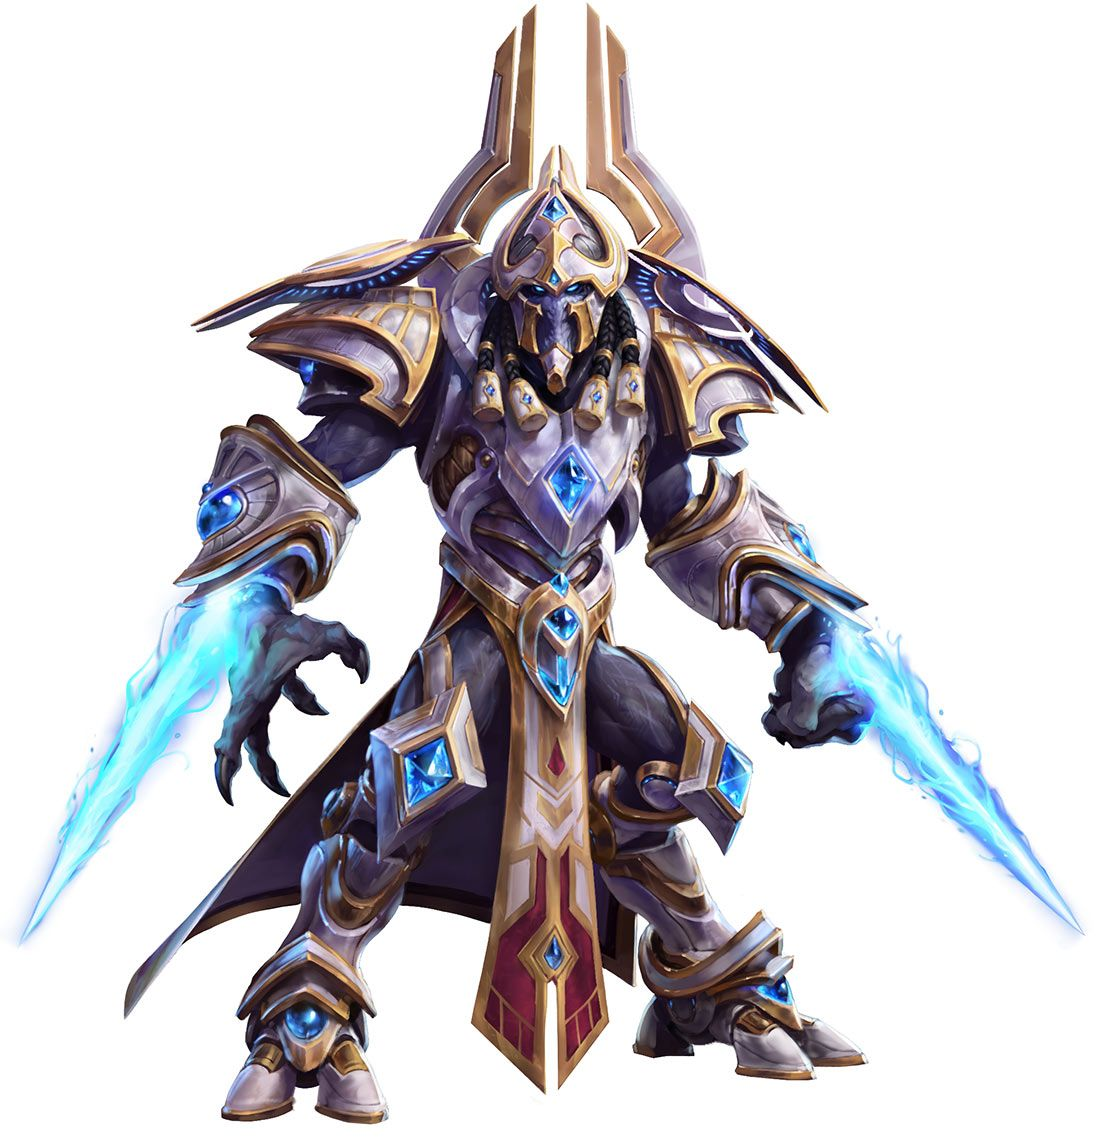 Artanis Characters Art Heroes Of The Storm Heroes Of The Storm Character Art Storm Art Kevin cloaken johnson introduces you to the newest warrior entering the nexus, artanis. artanis characters art heroes of